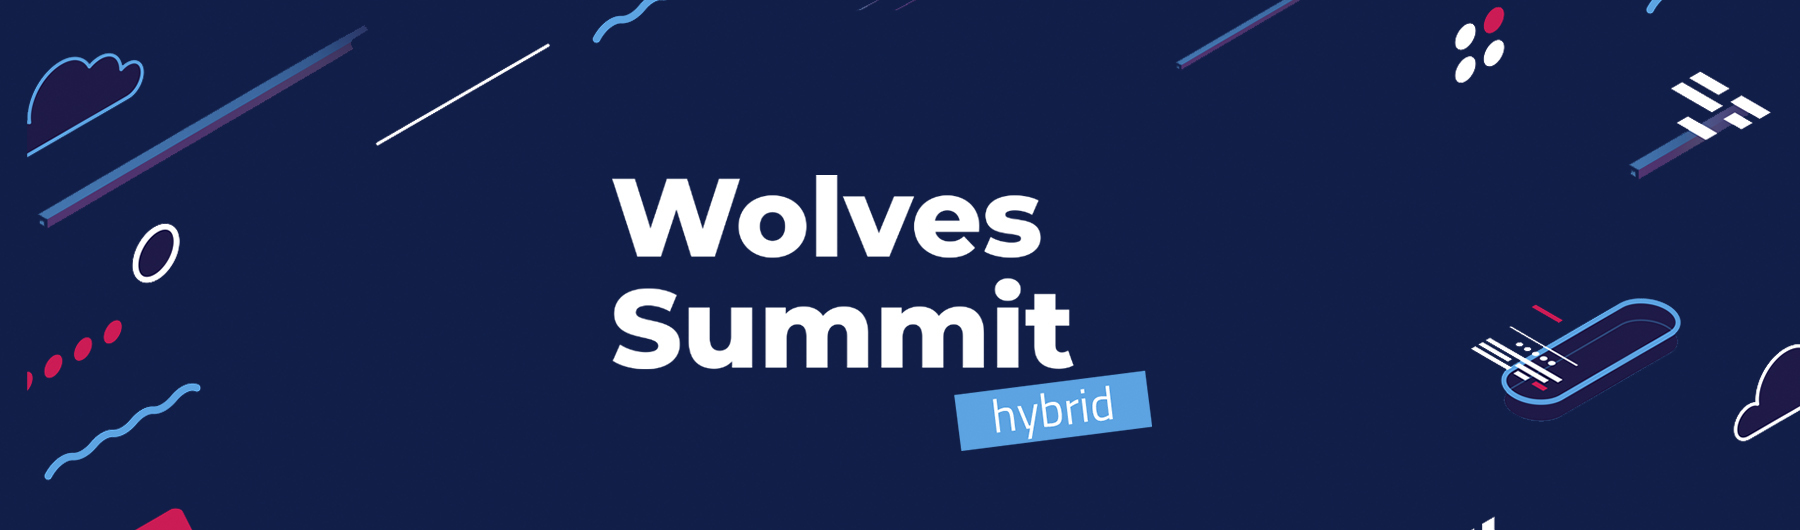 Wolves Summit October 2021